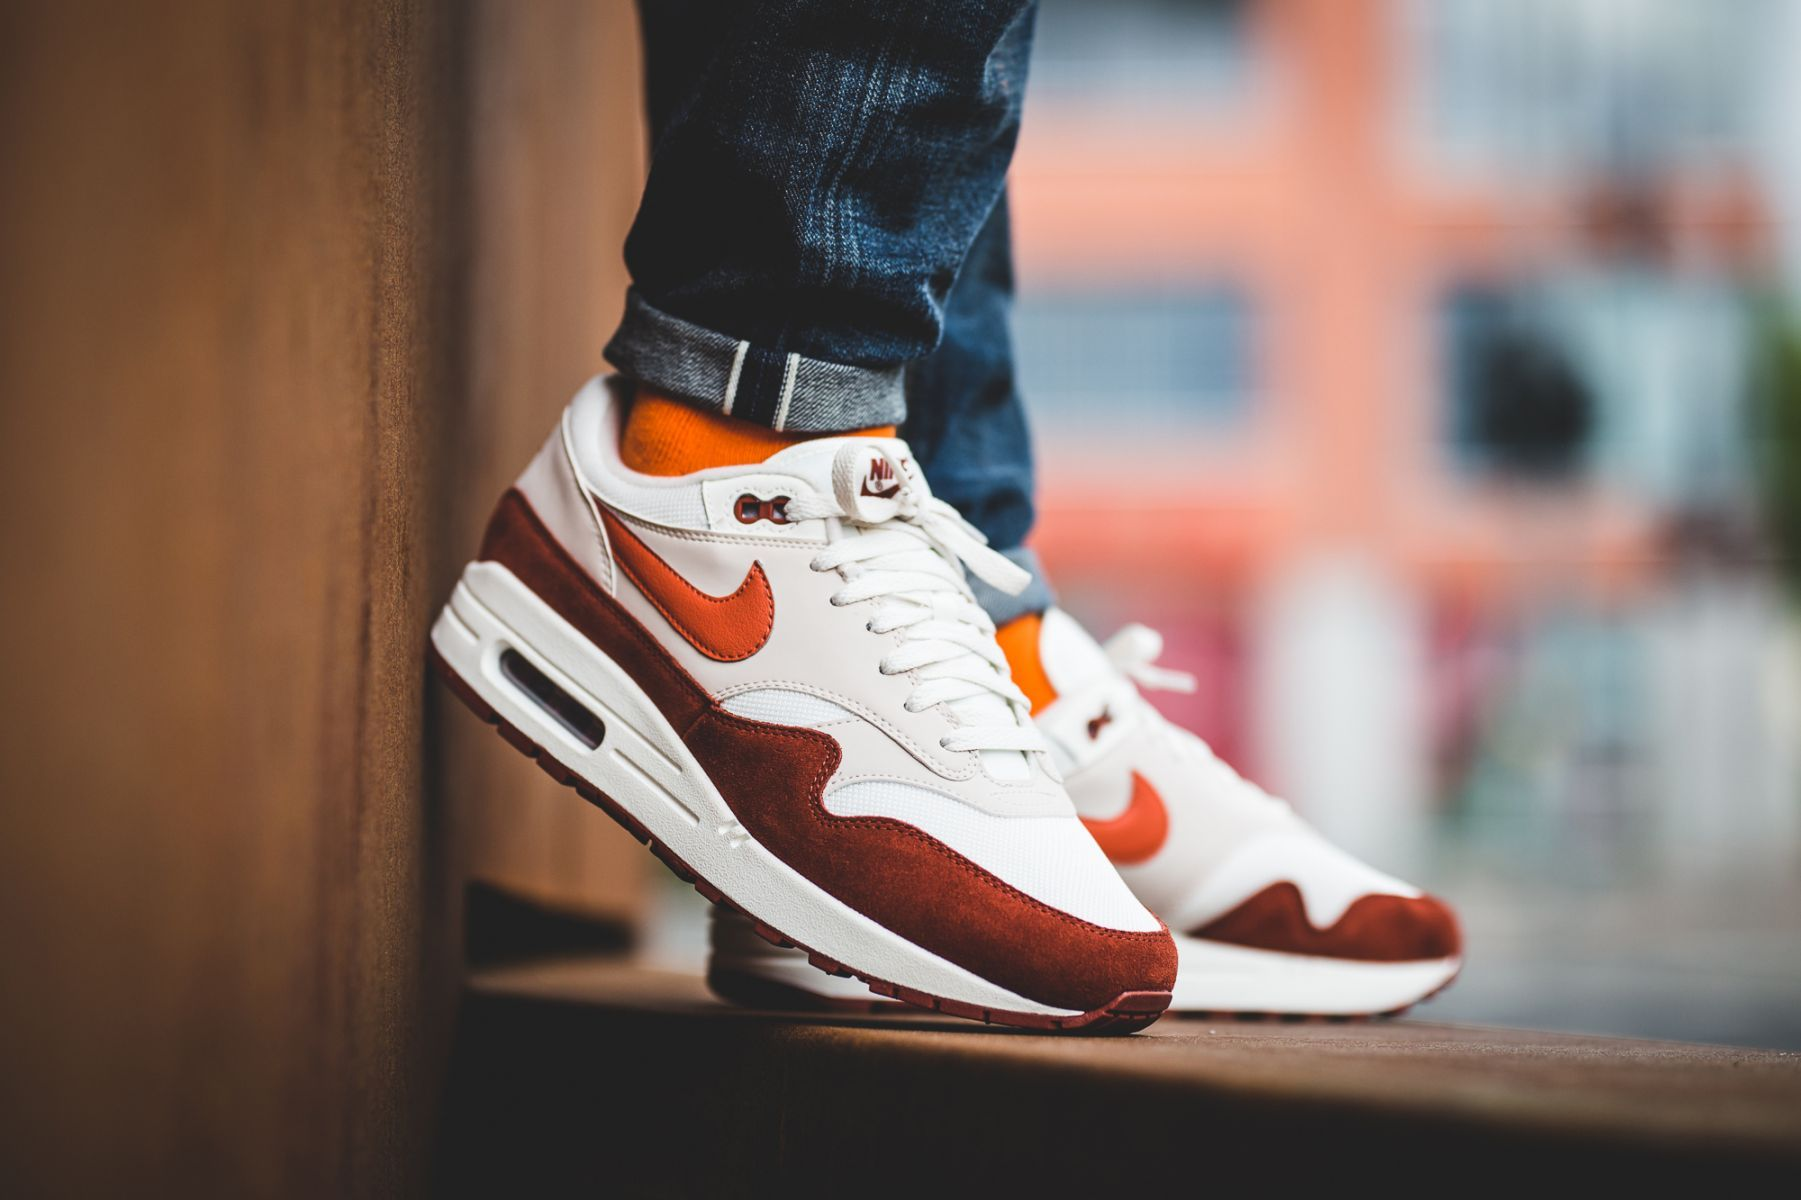 Ejecutable ancla Buena voluntad  Nike Air Max 1 Curry 2.0 - AH8145-104 | 43einhalb sneaker store | Nike air  max, Nike, Nike air